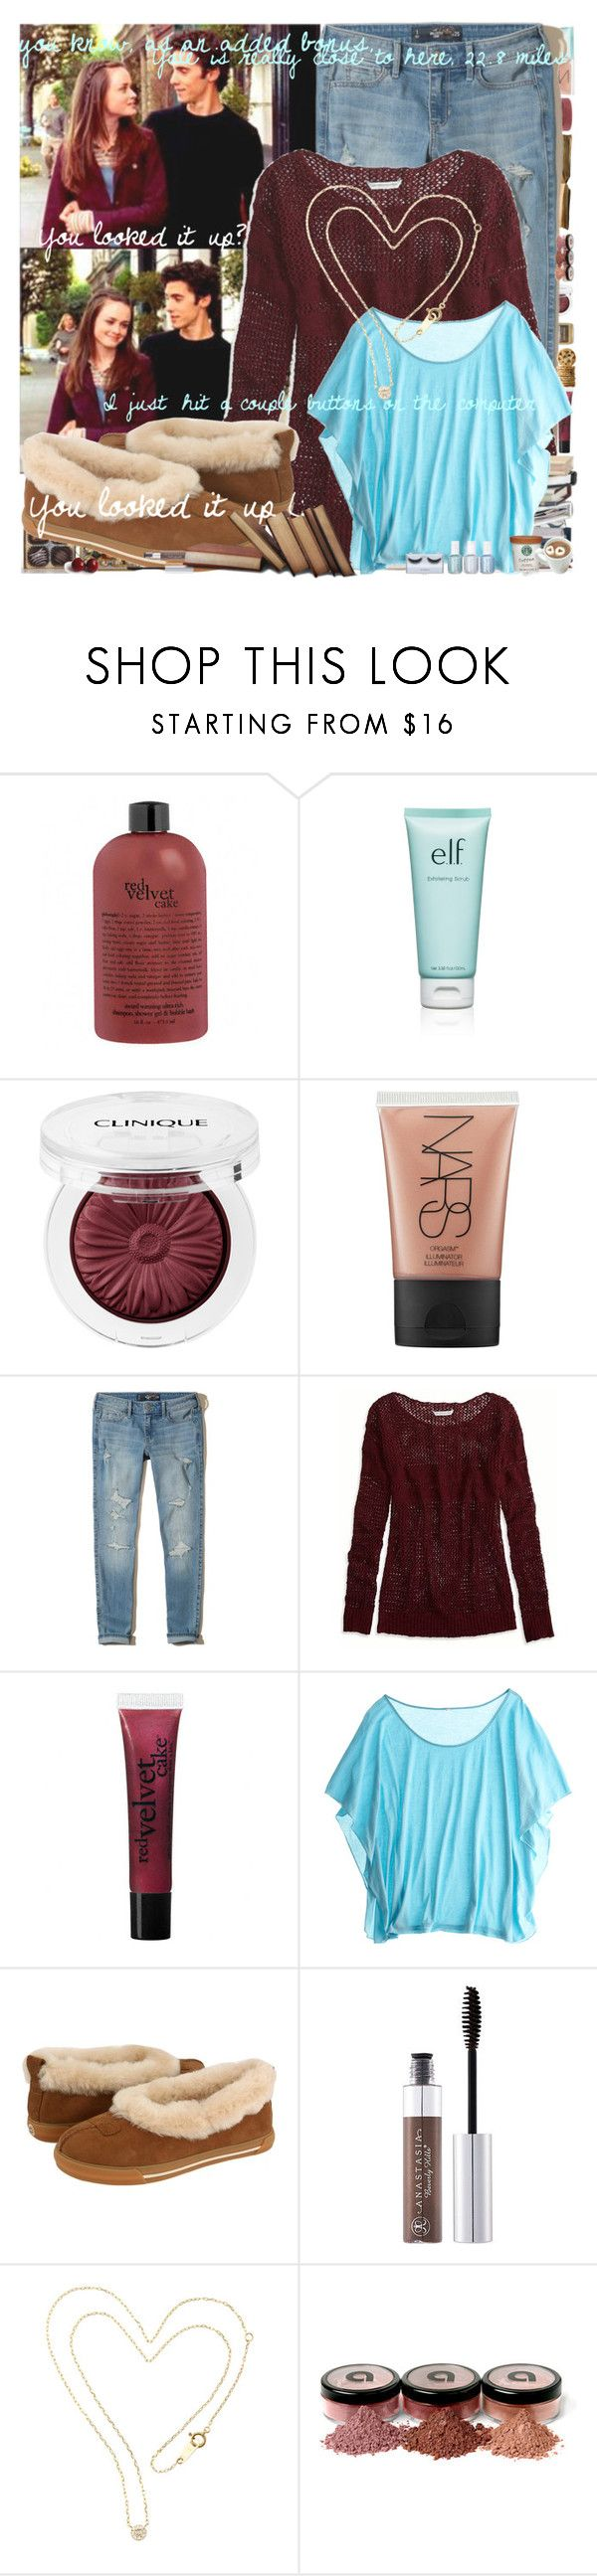 """""""You looked it up :) ♡"""" by sammylynn ❤ liked on Polyvore featuring philosophy, e.l.f., Clinique, NARS Cosmetics, Hollister Co., American Eagle Outfitters, November, Calypso St. Barth, UGG Australia and Anastasia Beverly Hills"""